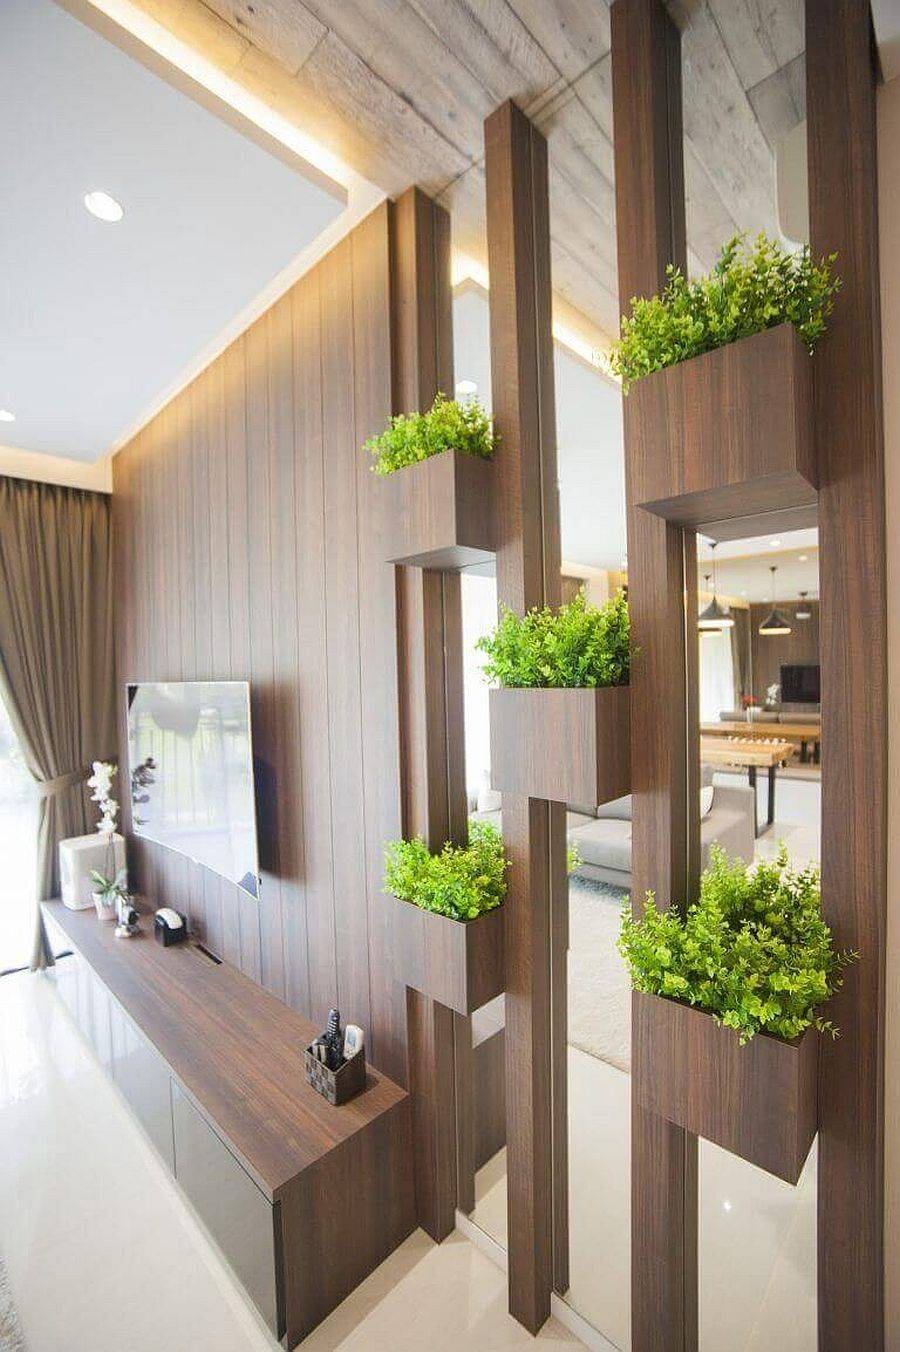 Add-a-bit-of-greenery-to-your-home-with-a-trendy-creative-room-divider-23014